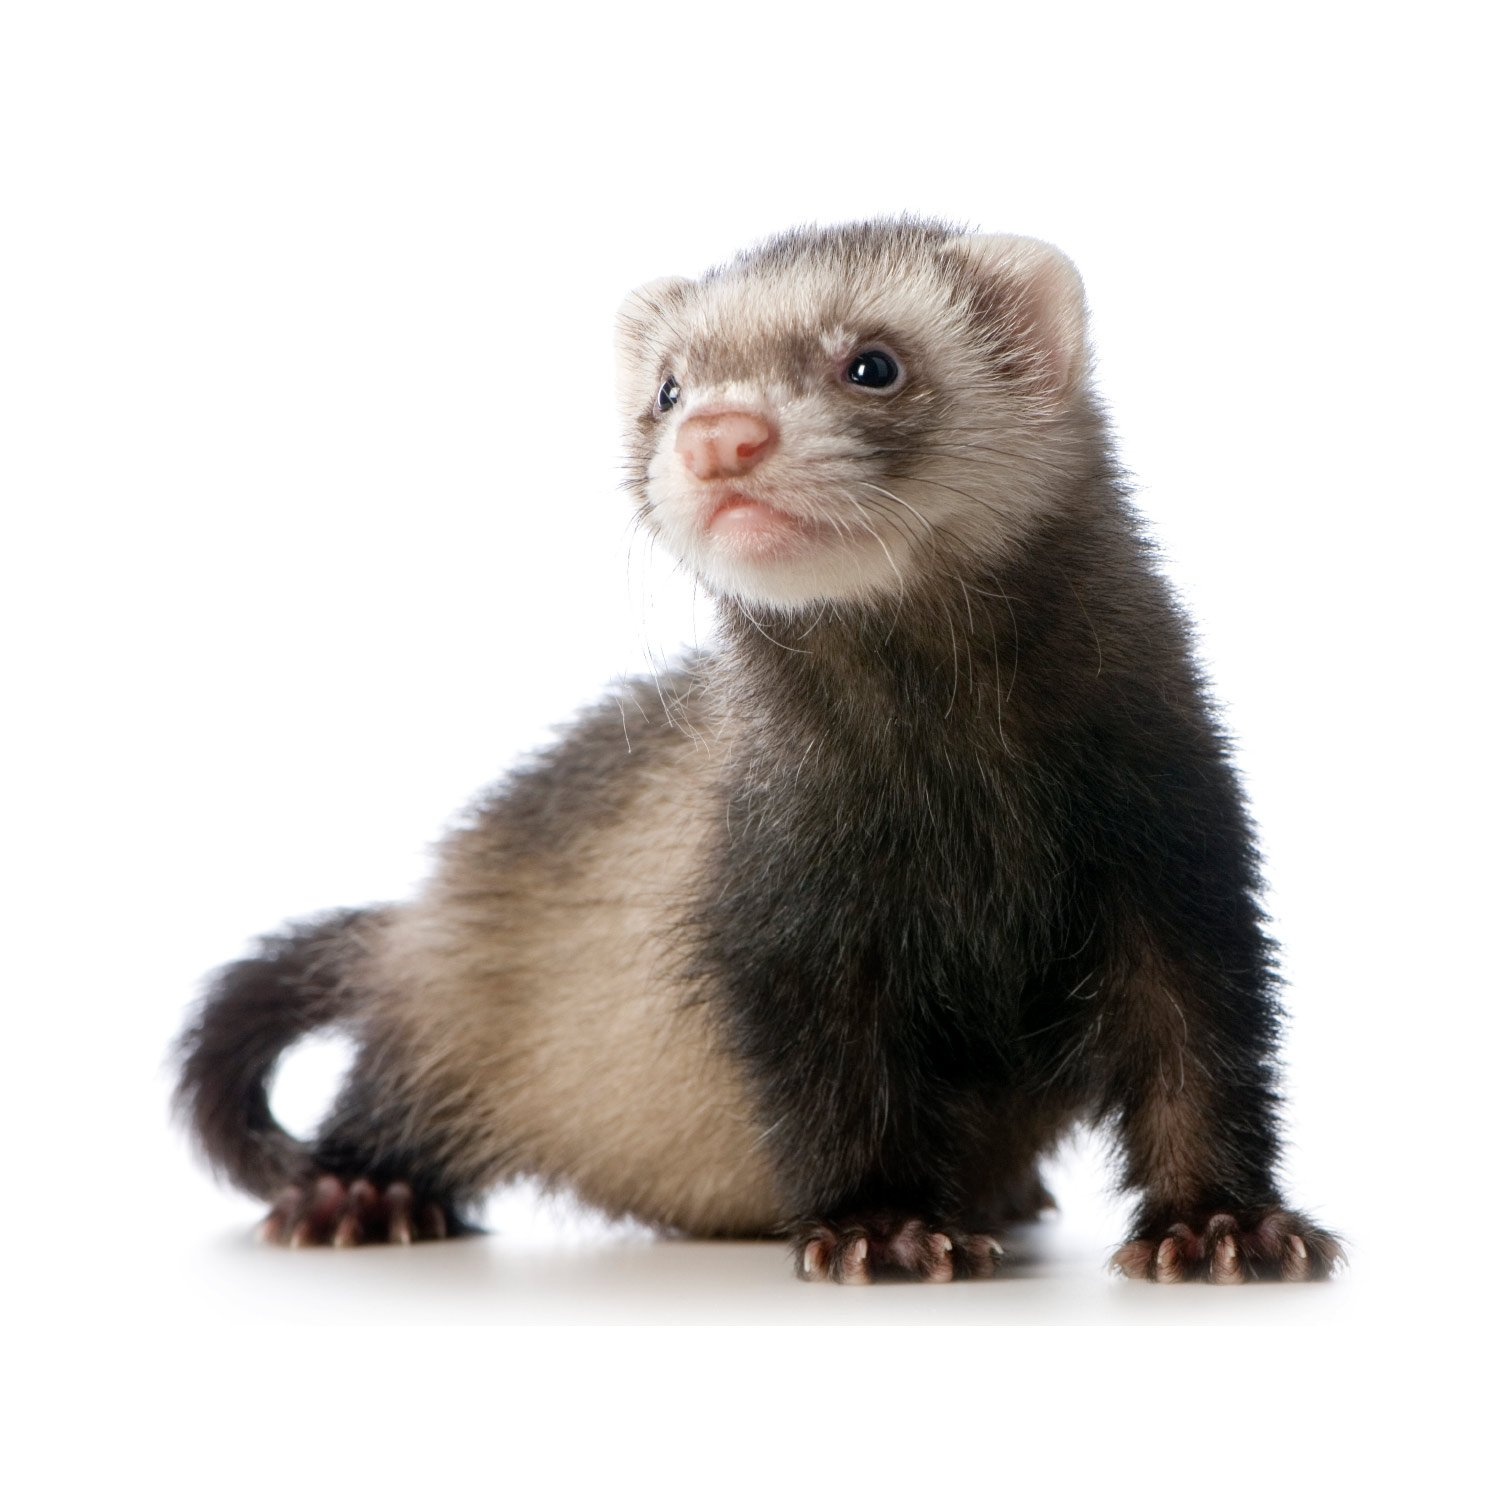 ferret facts history useful information and amazing pictures